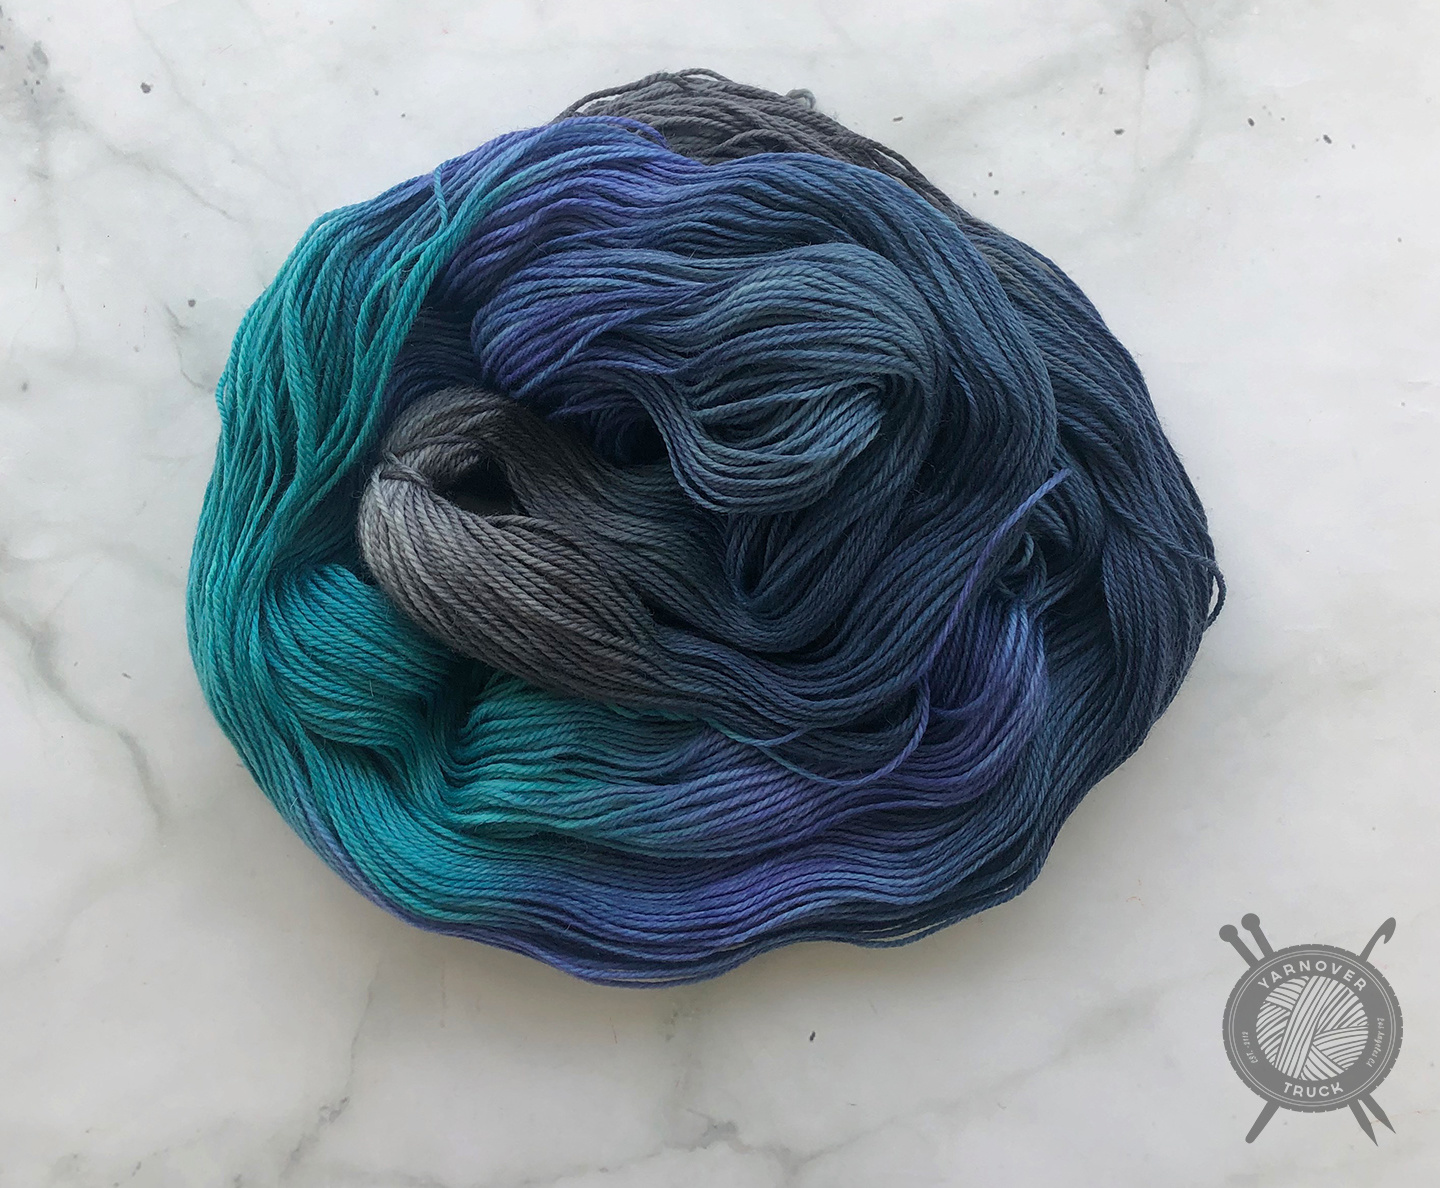 Yarn Love Beneath The Waves on Juliet from Yarn Love